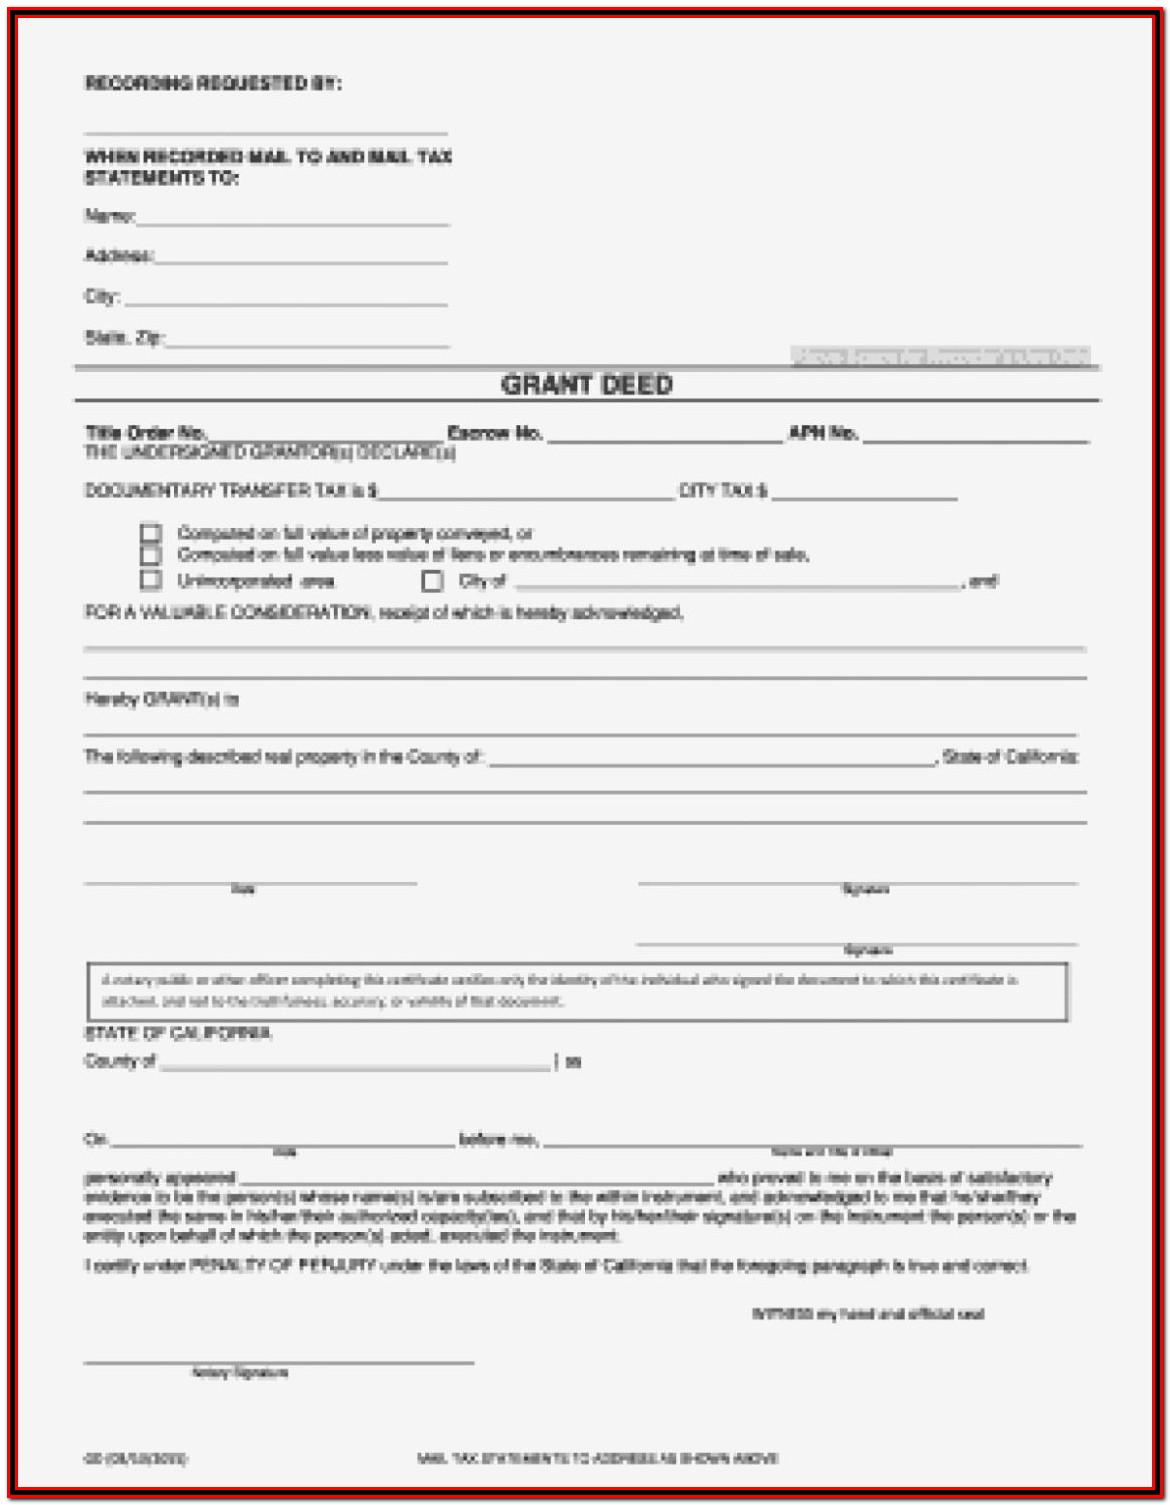 Grant Deed Form Alameda County